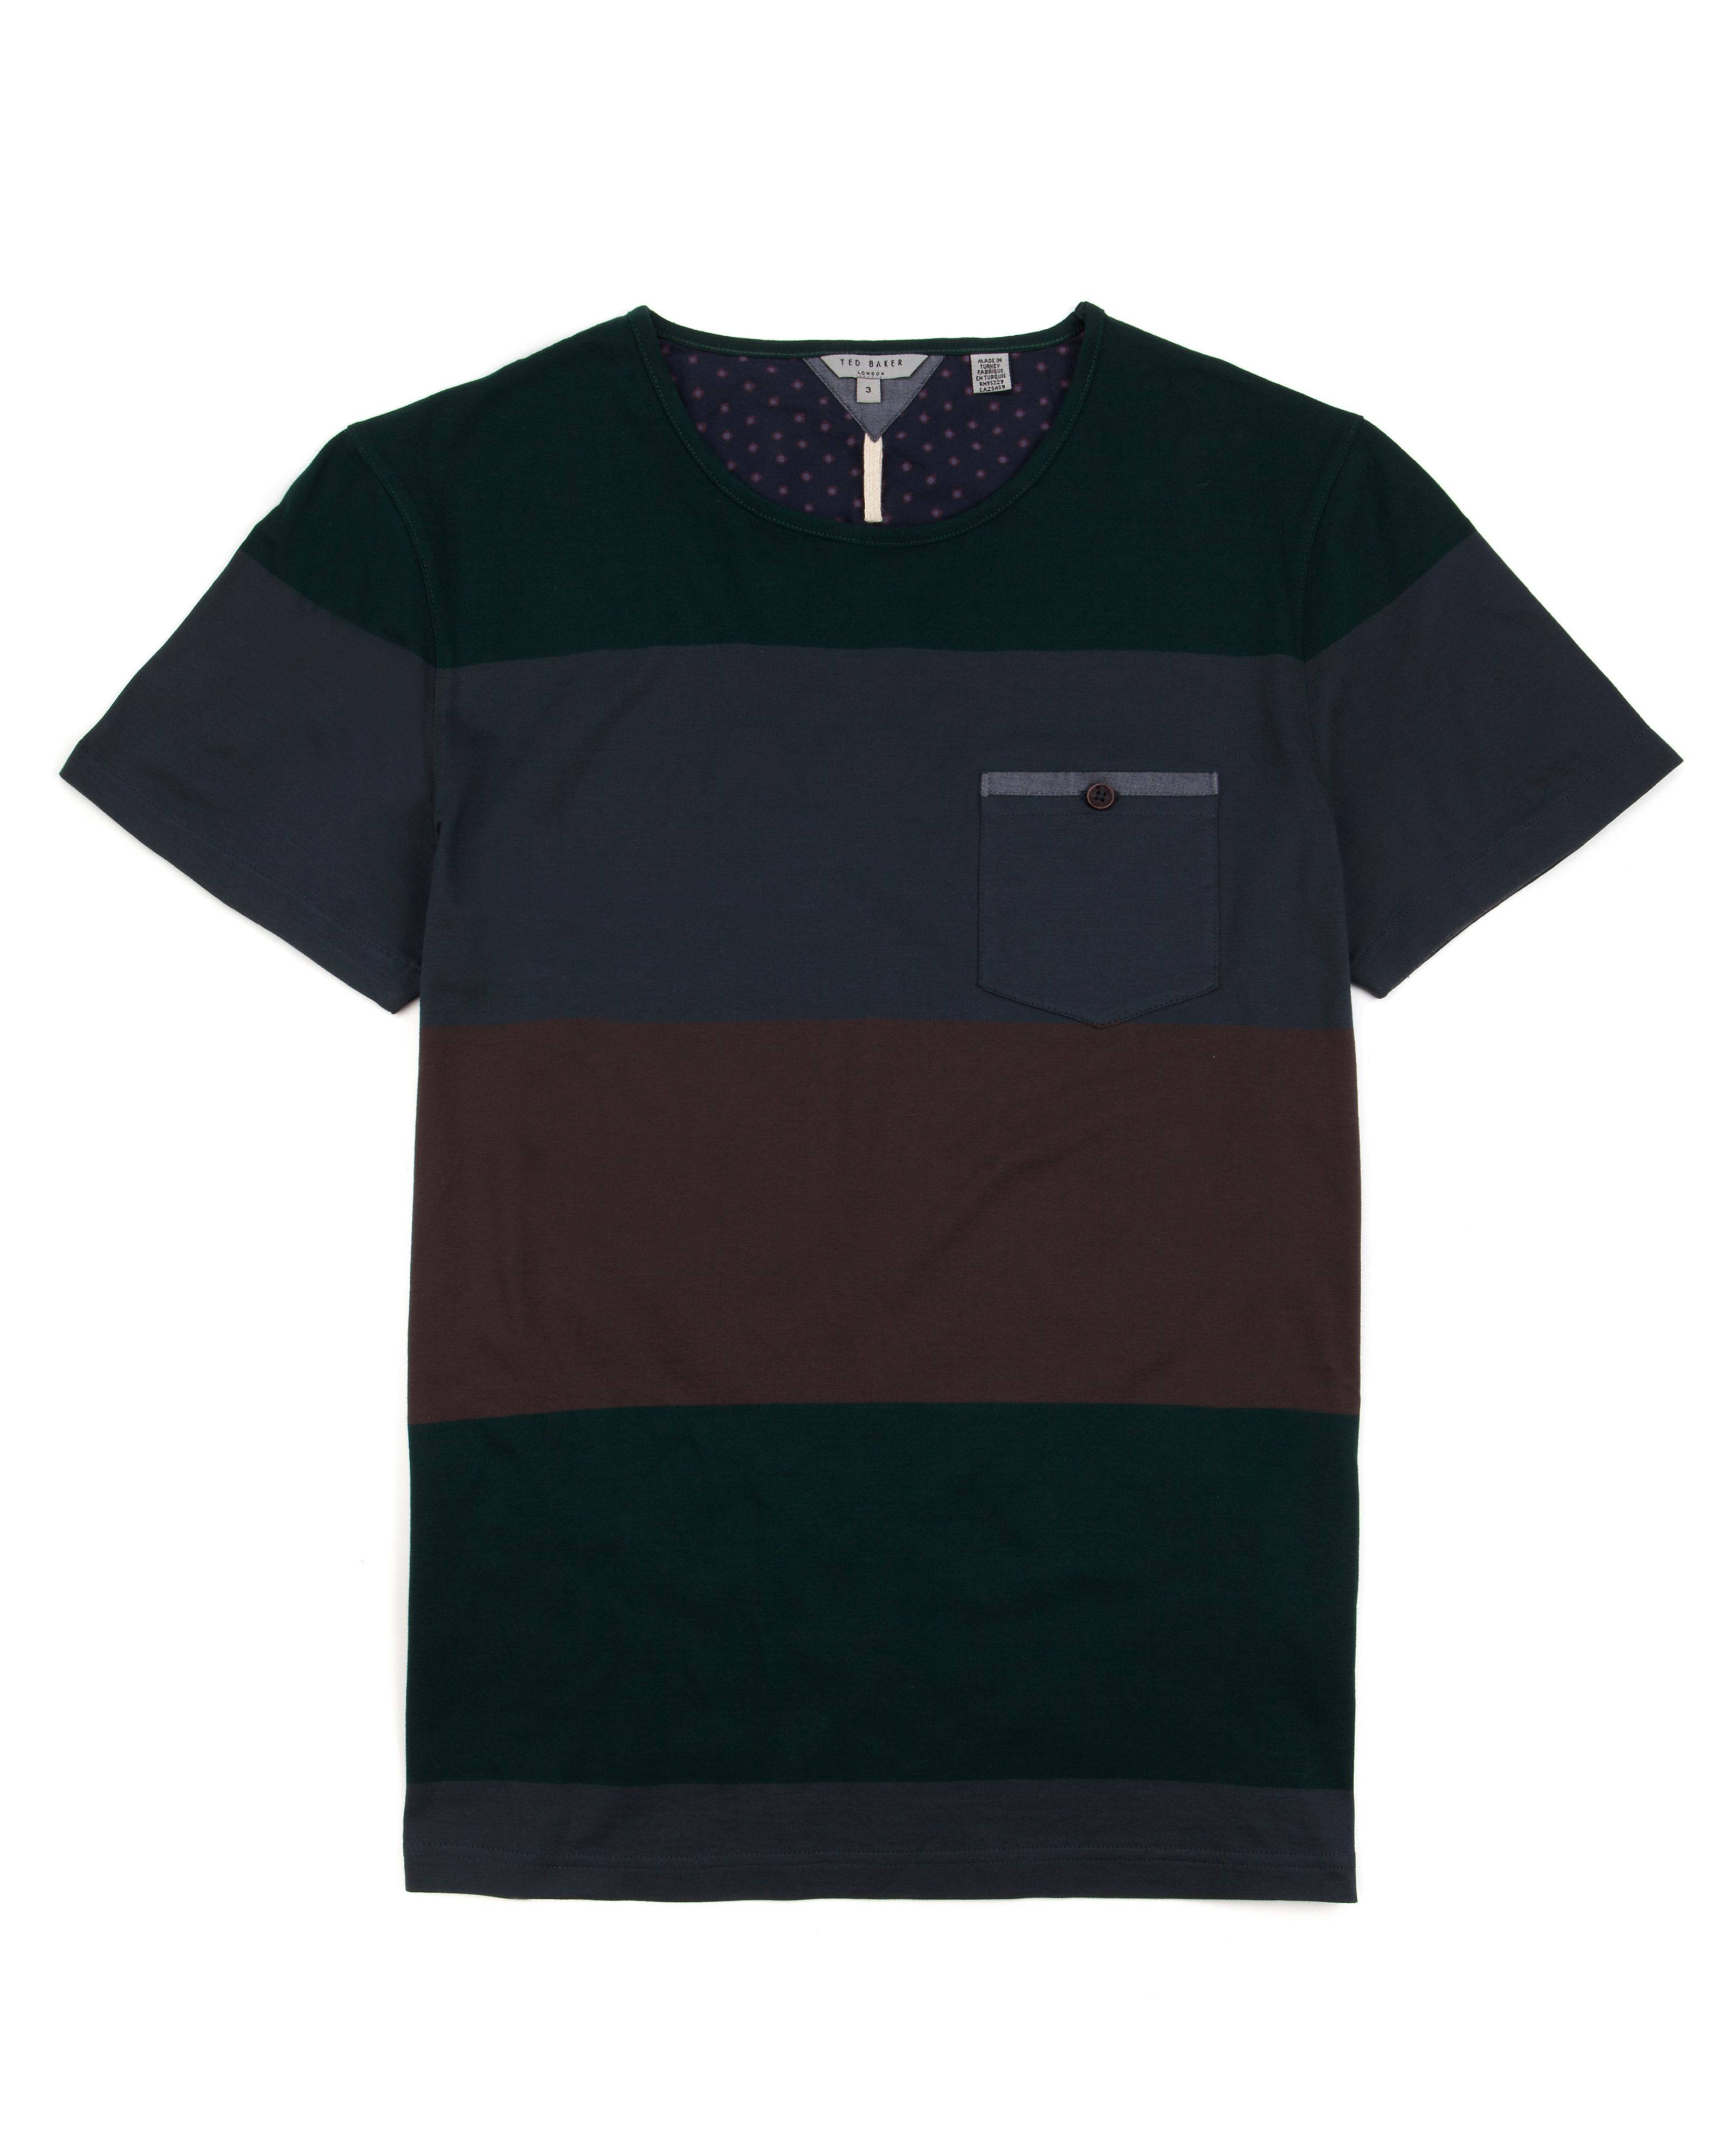 Ted Baker Mens Ted Baker Bigstri striped T-shirt, product image